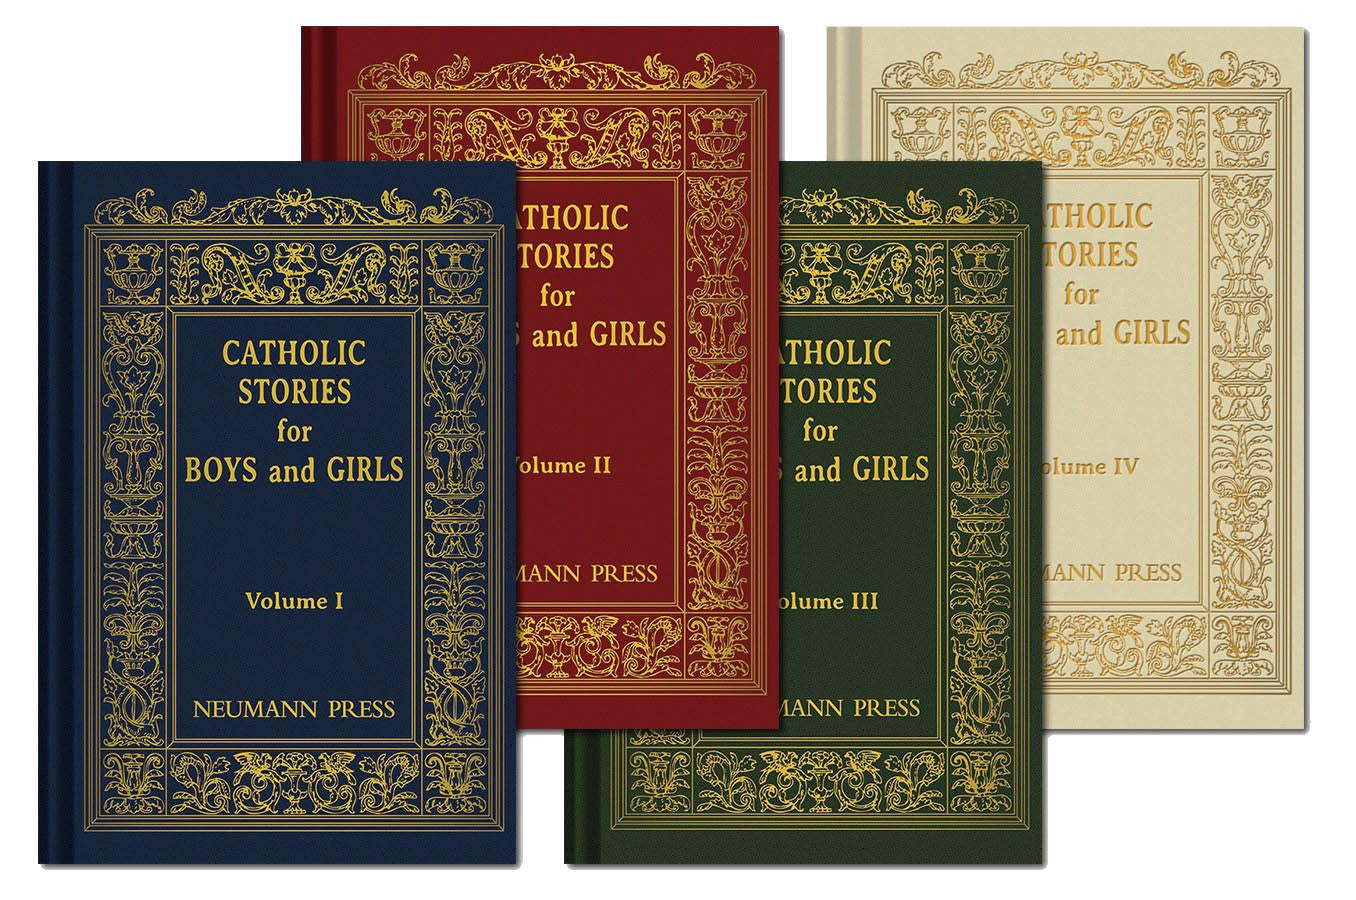 Catholic Stories for Boys and Girls (Set of 4) at ABCatholic - ABCatholic